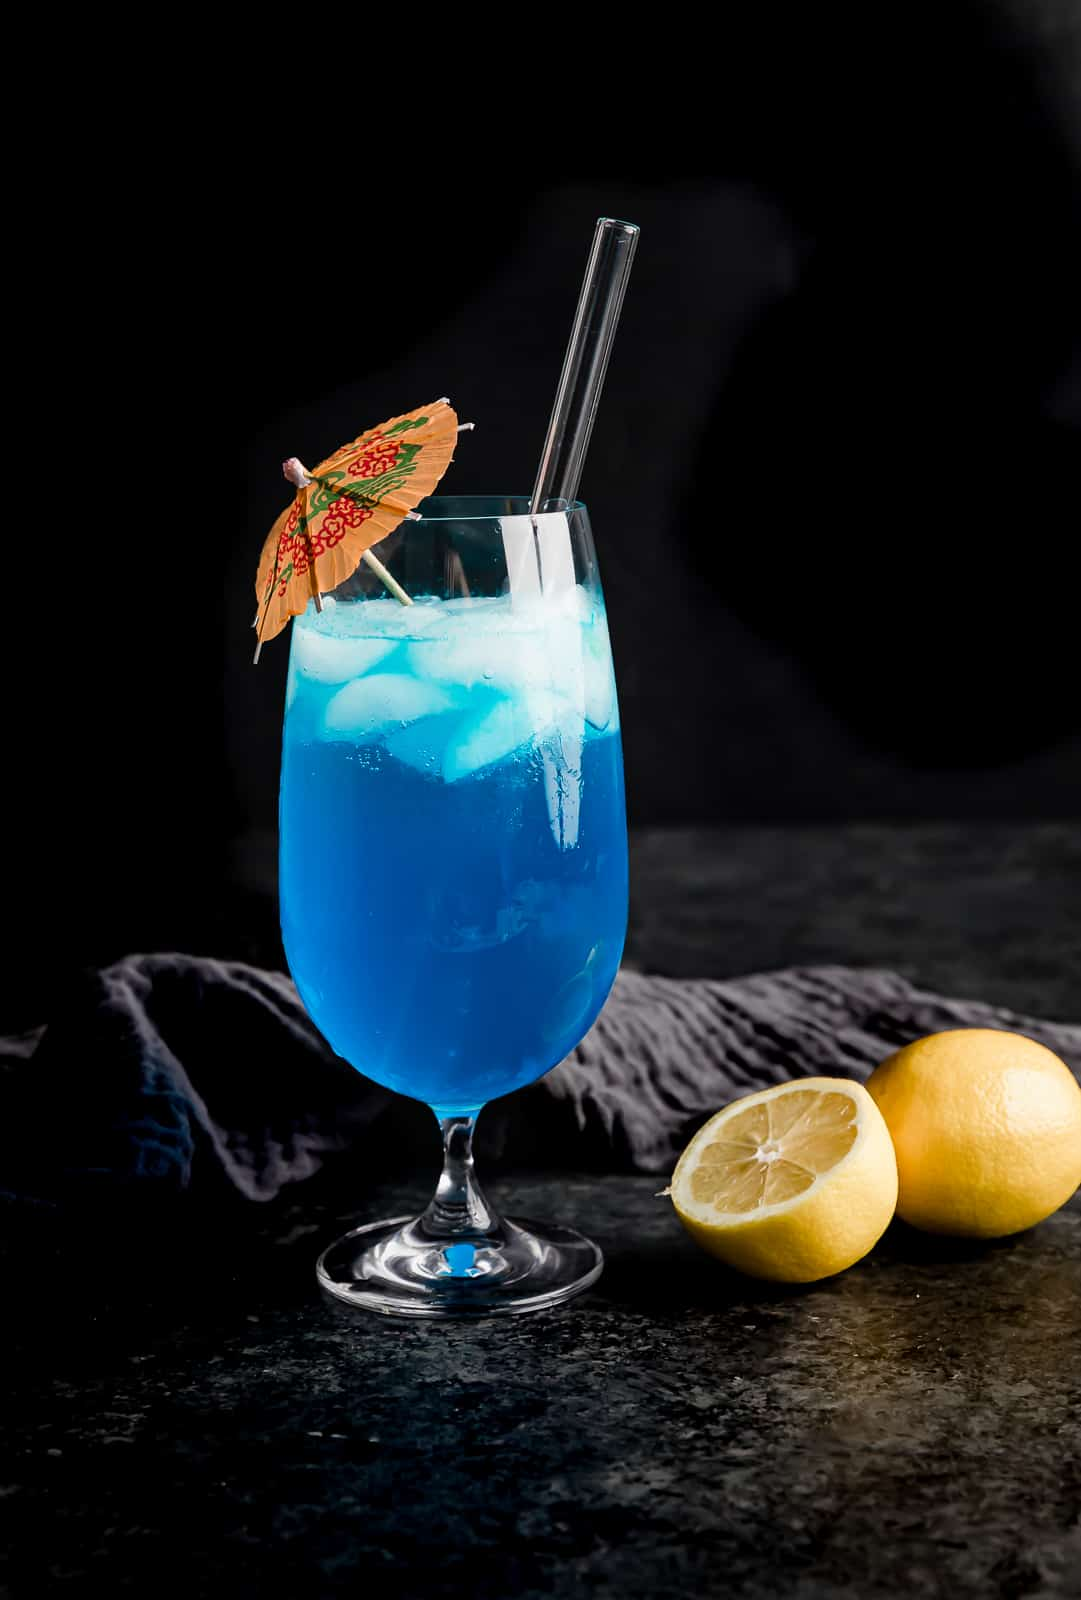 A glass cup full of a blue lagoon drink with a pink umbrella in the cup.